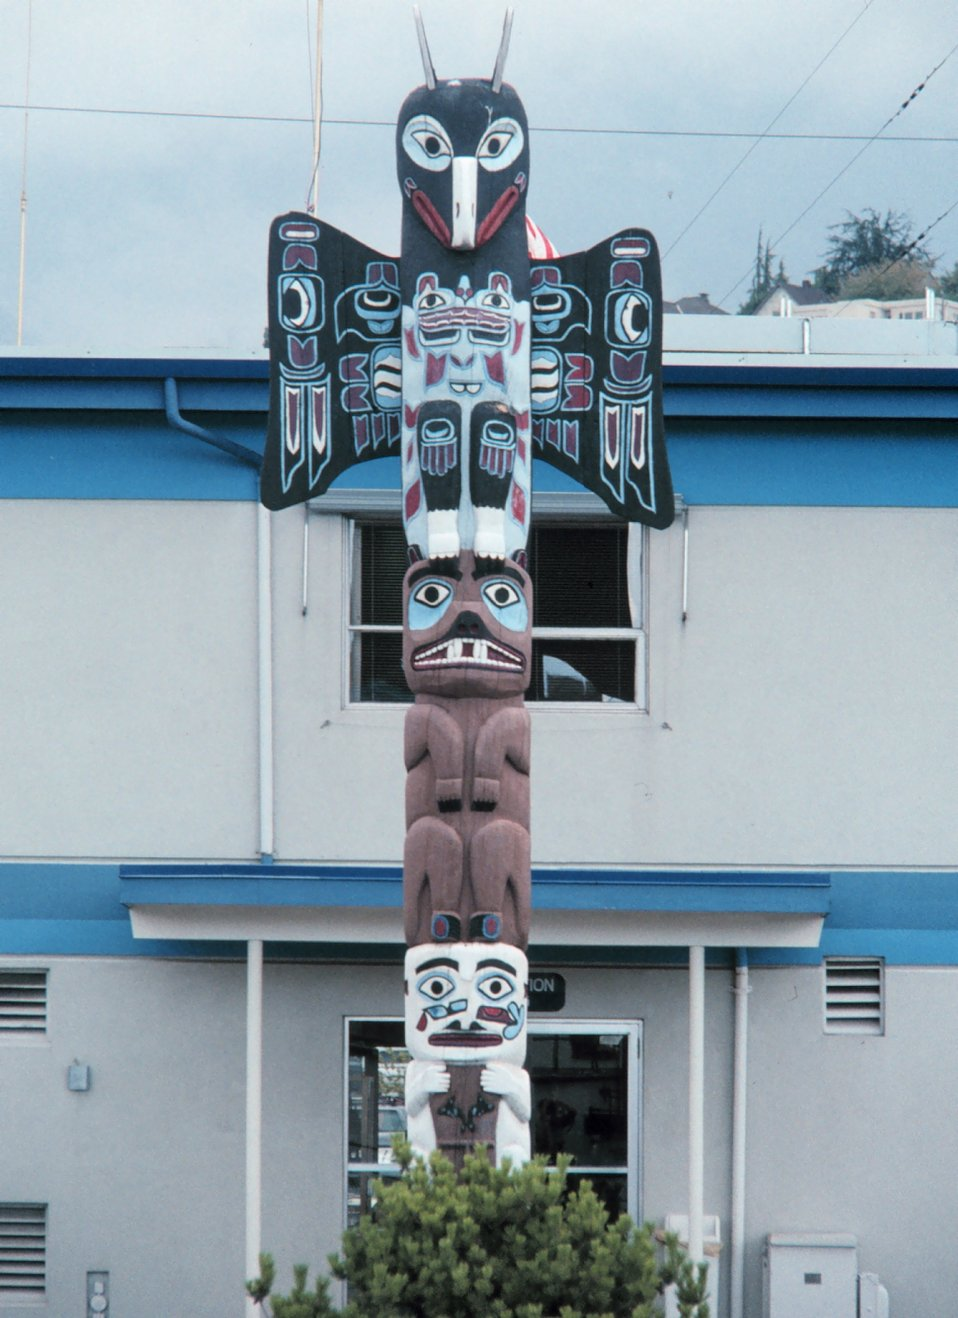 The totem pole at NOAA's Pacific Marine Center